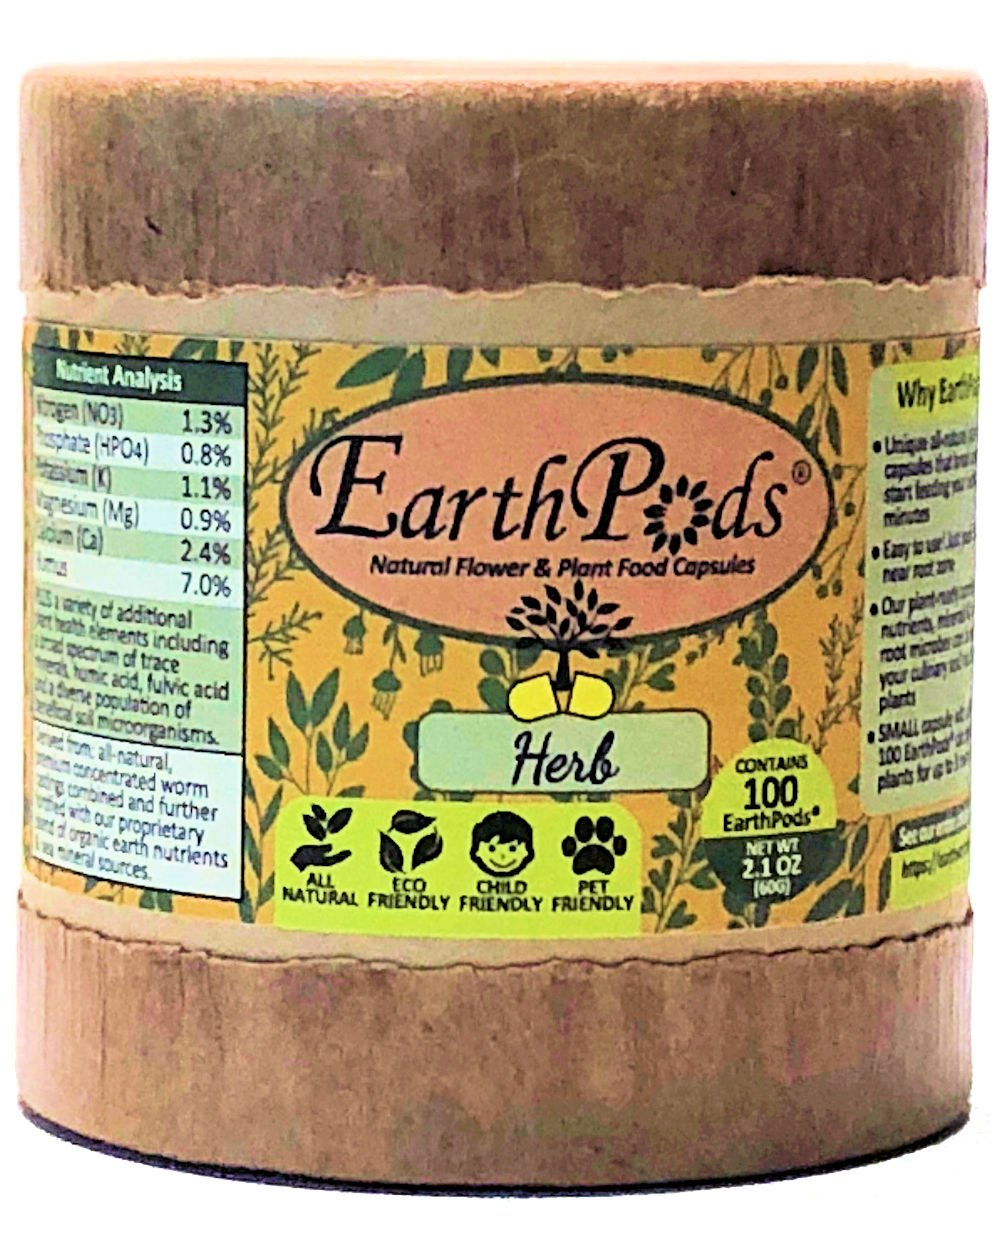 EarthPods HERB + VEGETABLE Bio Organic Fertilizer Capsules (100 Spikes, NO UREA, Feeds 10 Plants for 1 Year, Ecofriendly Plant Food for Culinary Kitchen Herbs, Vegetables & Medical Houseplants) by Earthworm Technologies (Image #1)